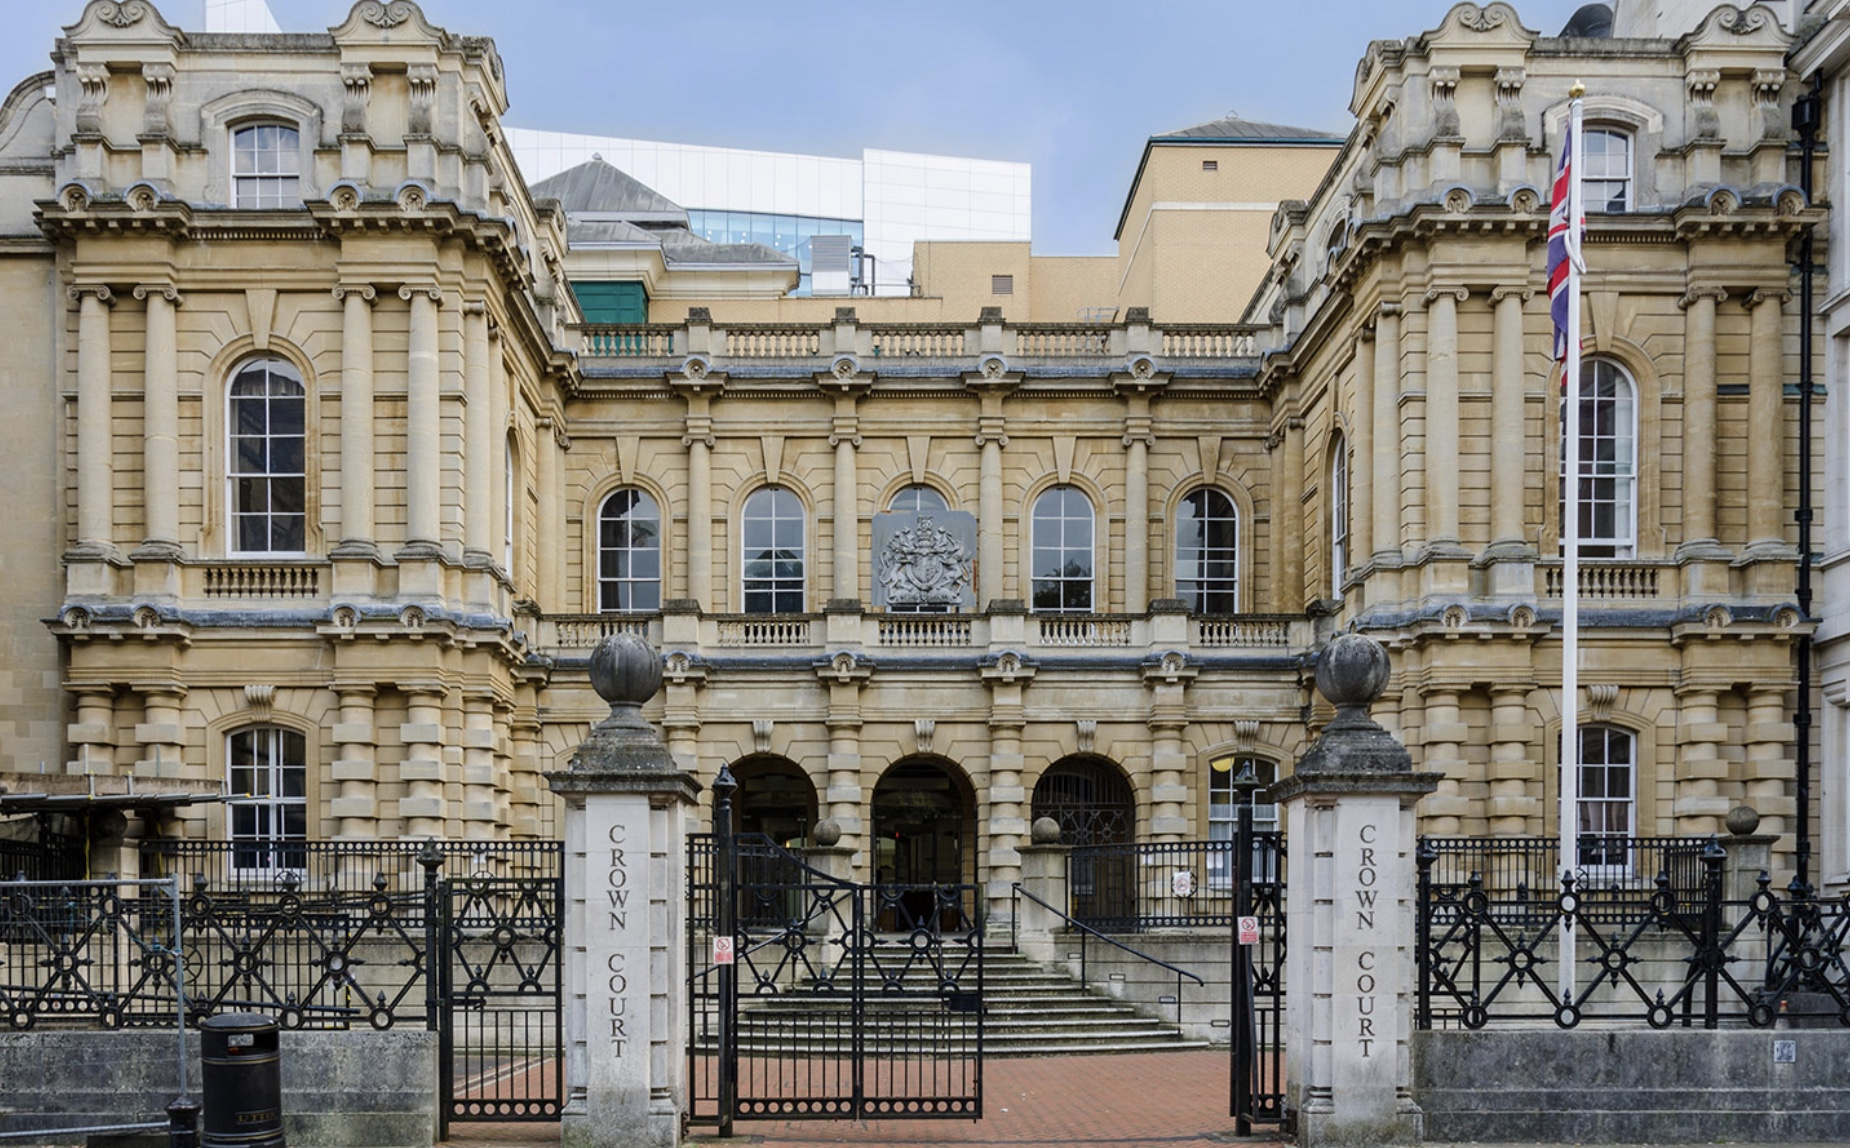 Crown Court, Reading - Robinson Associates designed the M&E services for the extension and updating of the old Reading Crown Court to provide up to date lighting, security systems and new ventilation and cooling to the six courts and ancillary areas.